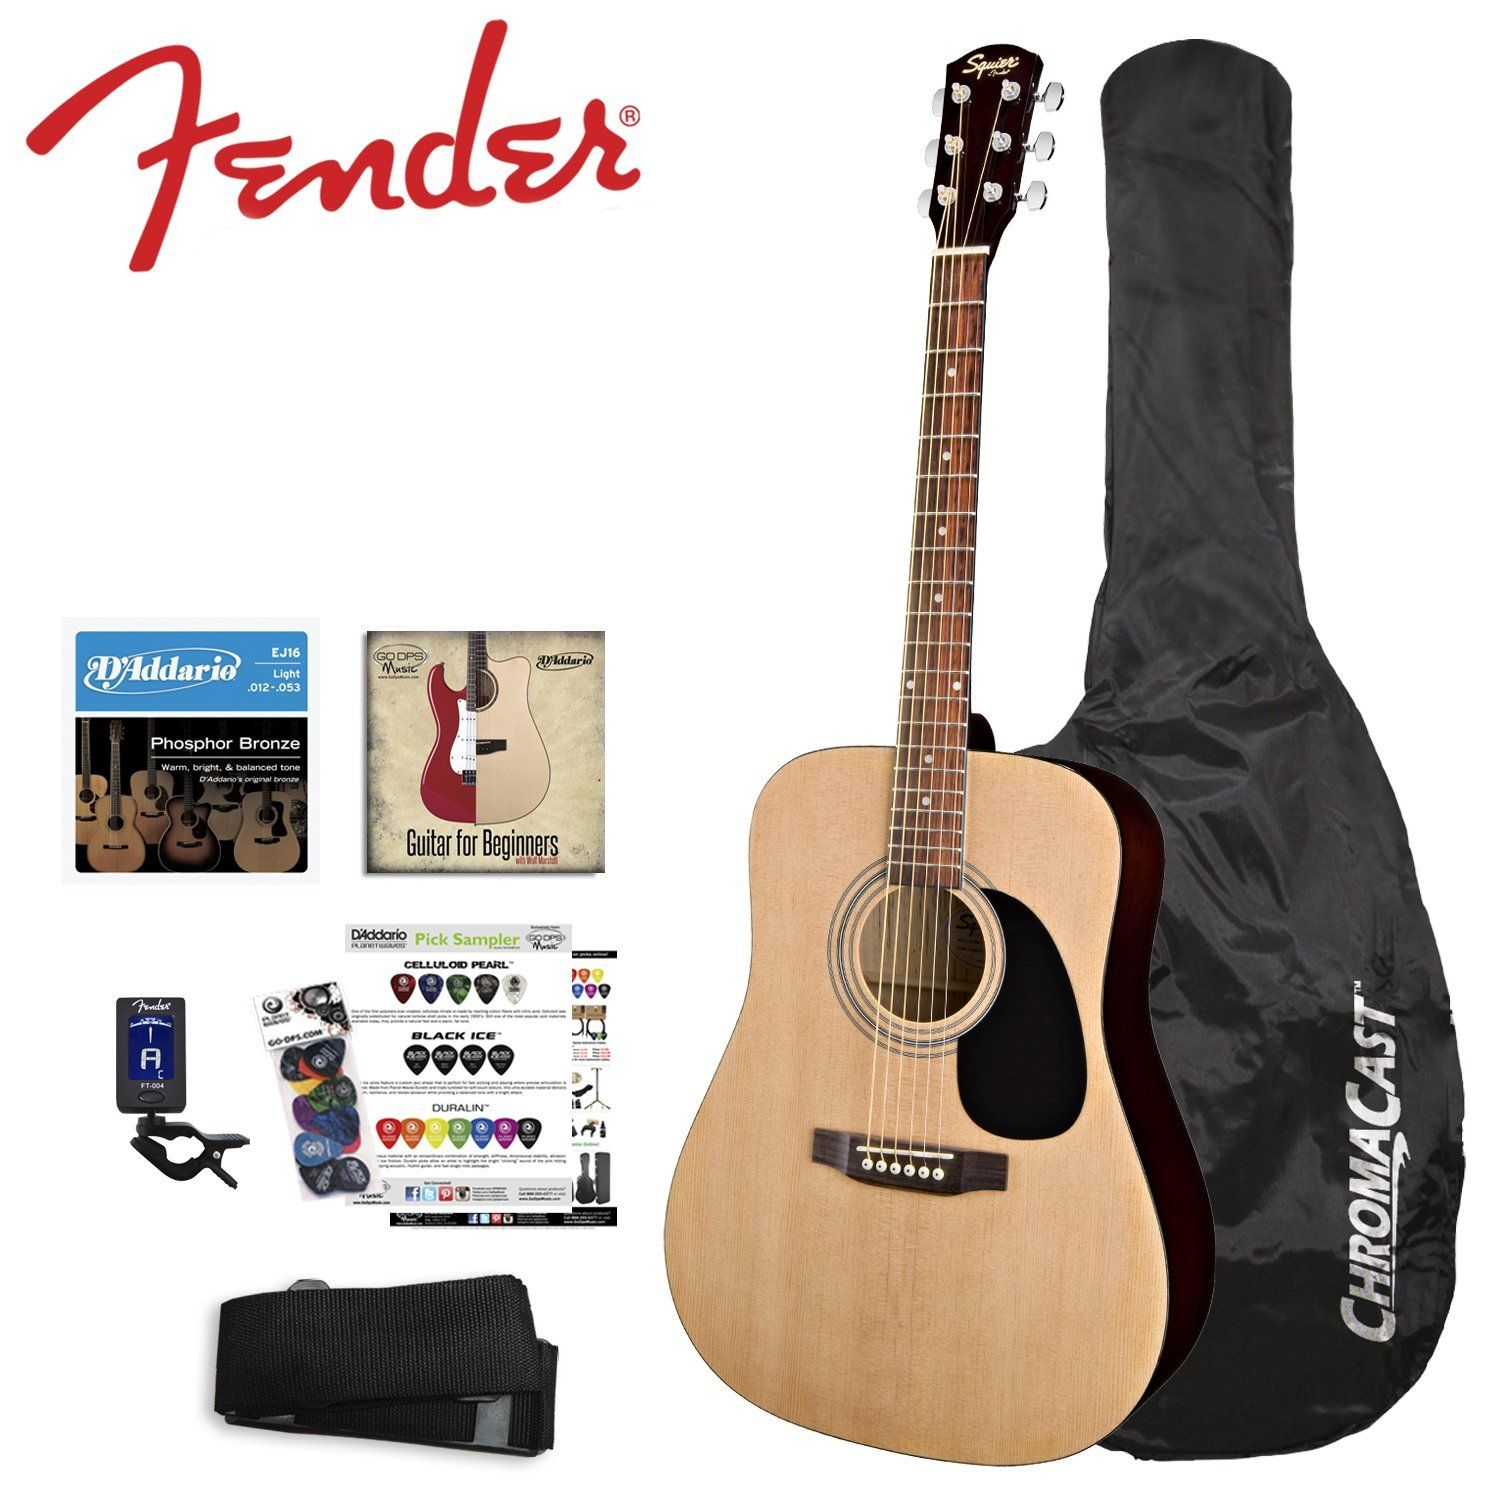 Fender Natural Acoustic Guitar Kit Includes Strings Strap Tuner Chromacast Guitar Bag And Godpsmusic Pick Sam Guitar Bag Acoustic Guitar Kits Guitar Kits